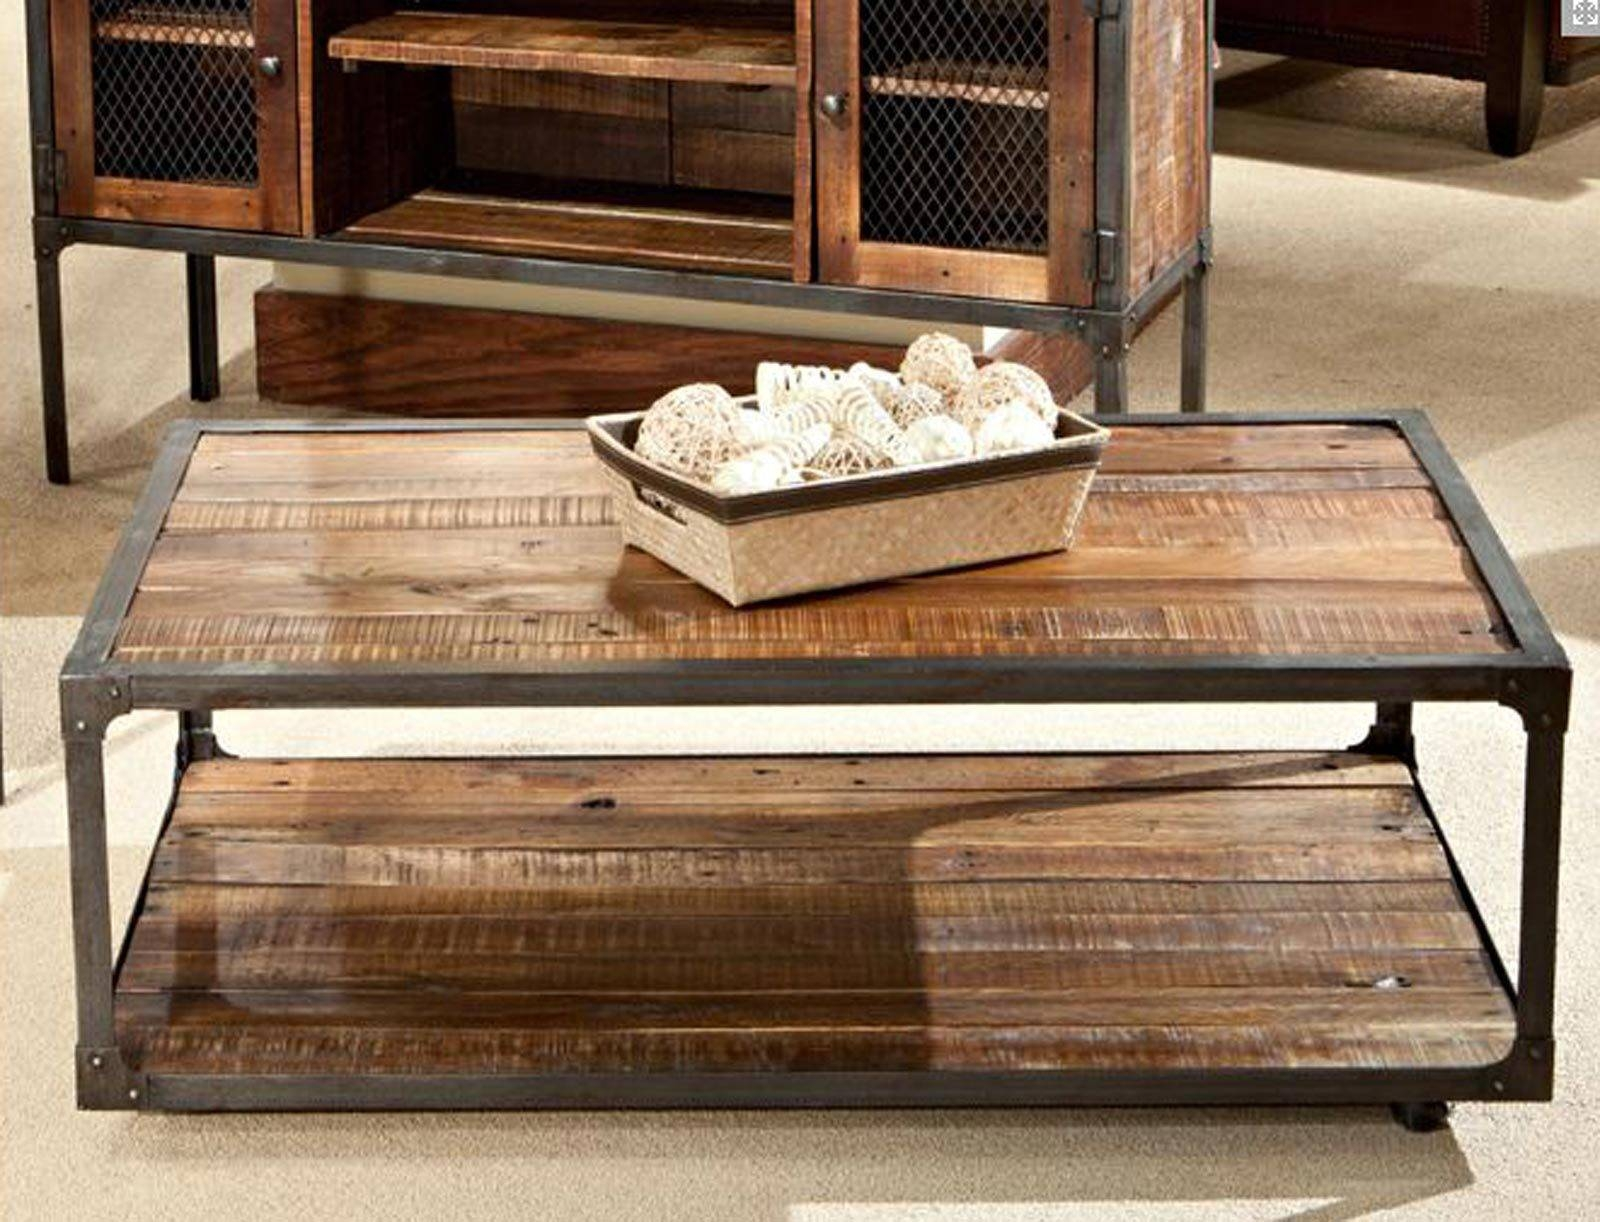 Wooden Coffee Table With Metal Frame - Coffee Addicts intended for Wood and Steel Coffee Table (Image 15 of 15)